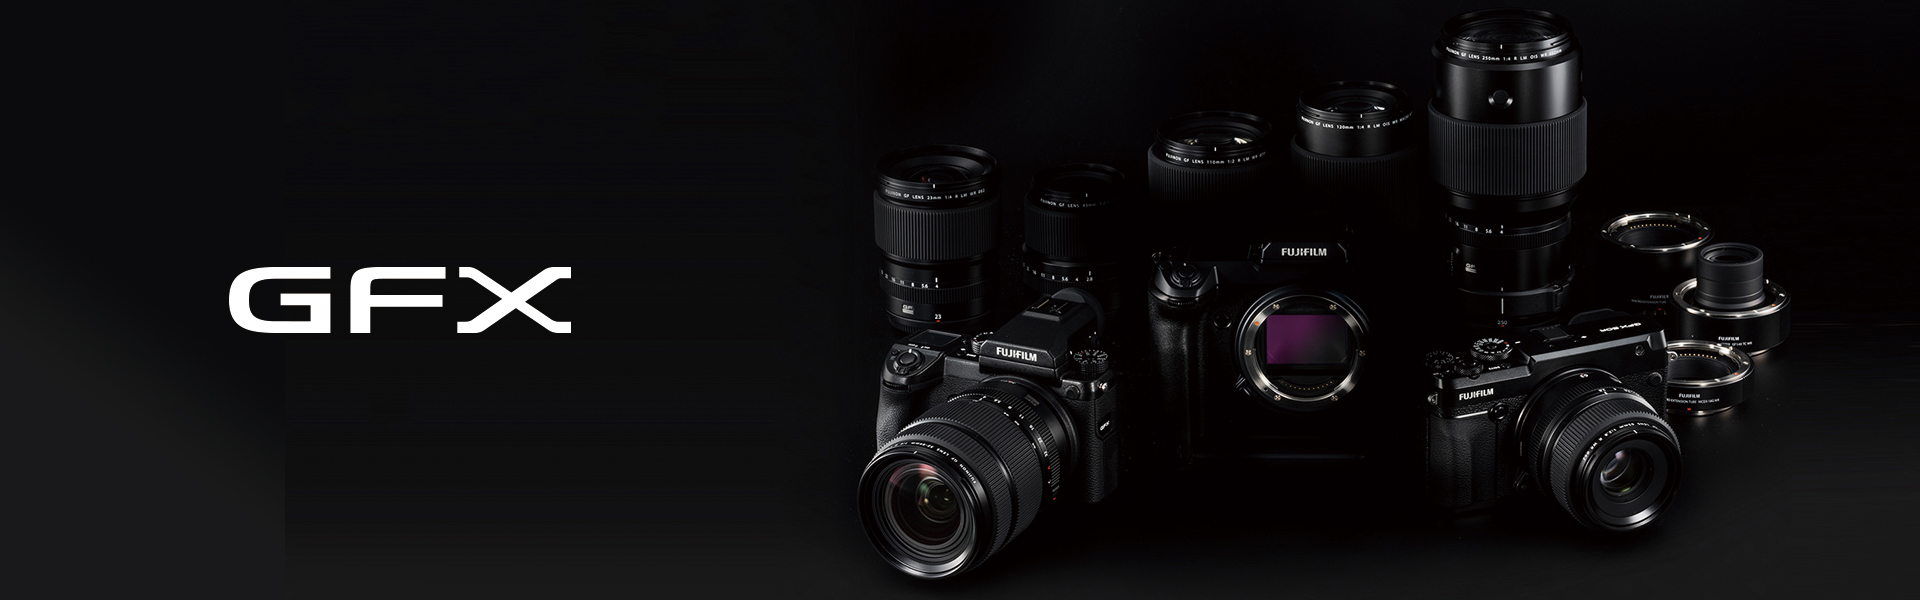 [photo] 3 GFX cameras and compatible lenses and converters